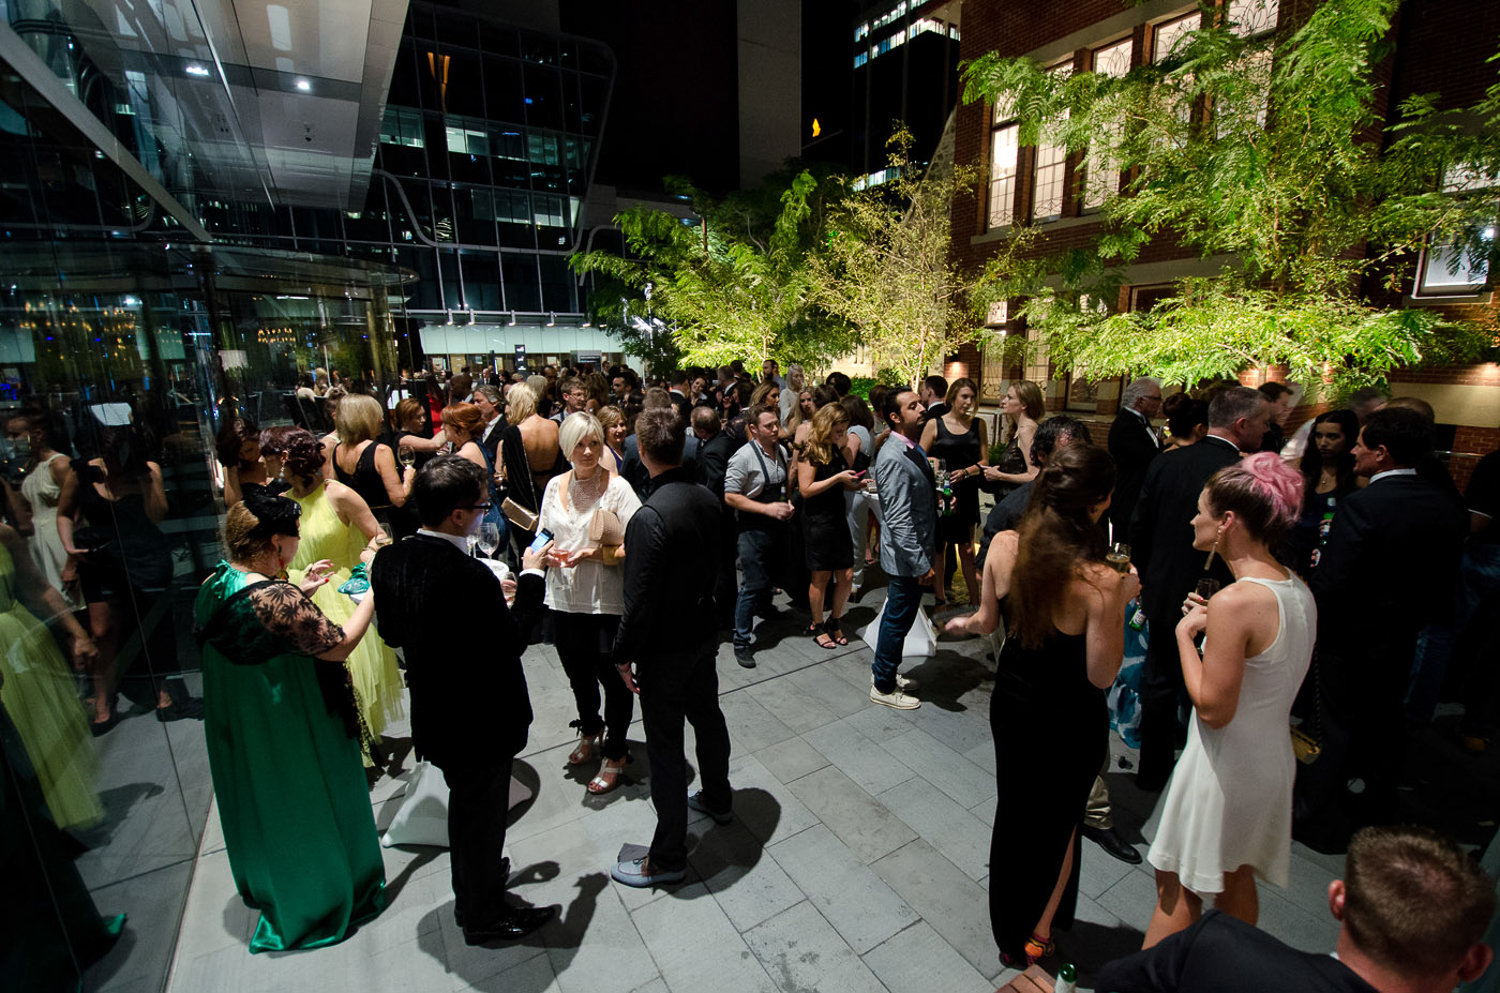 Perth Events Photographer | Perth Photography